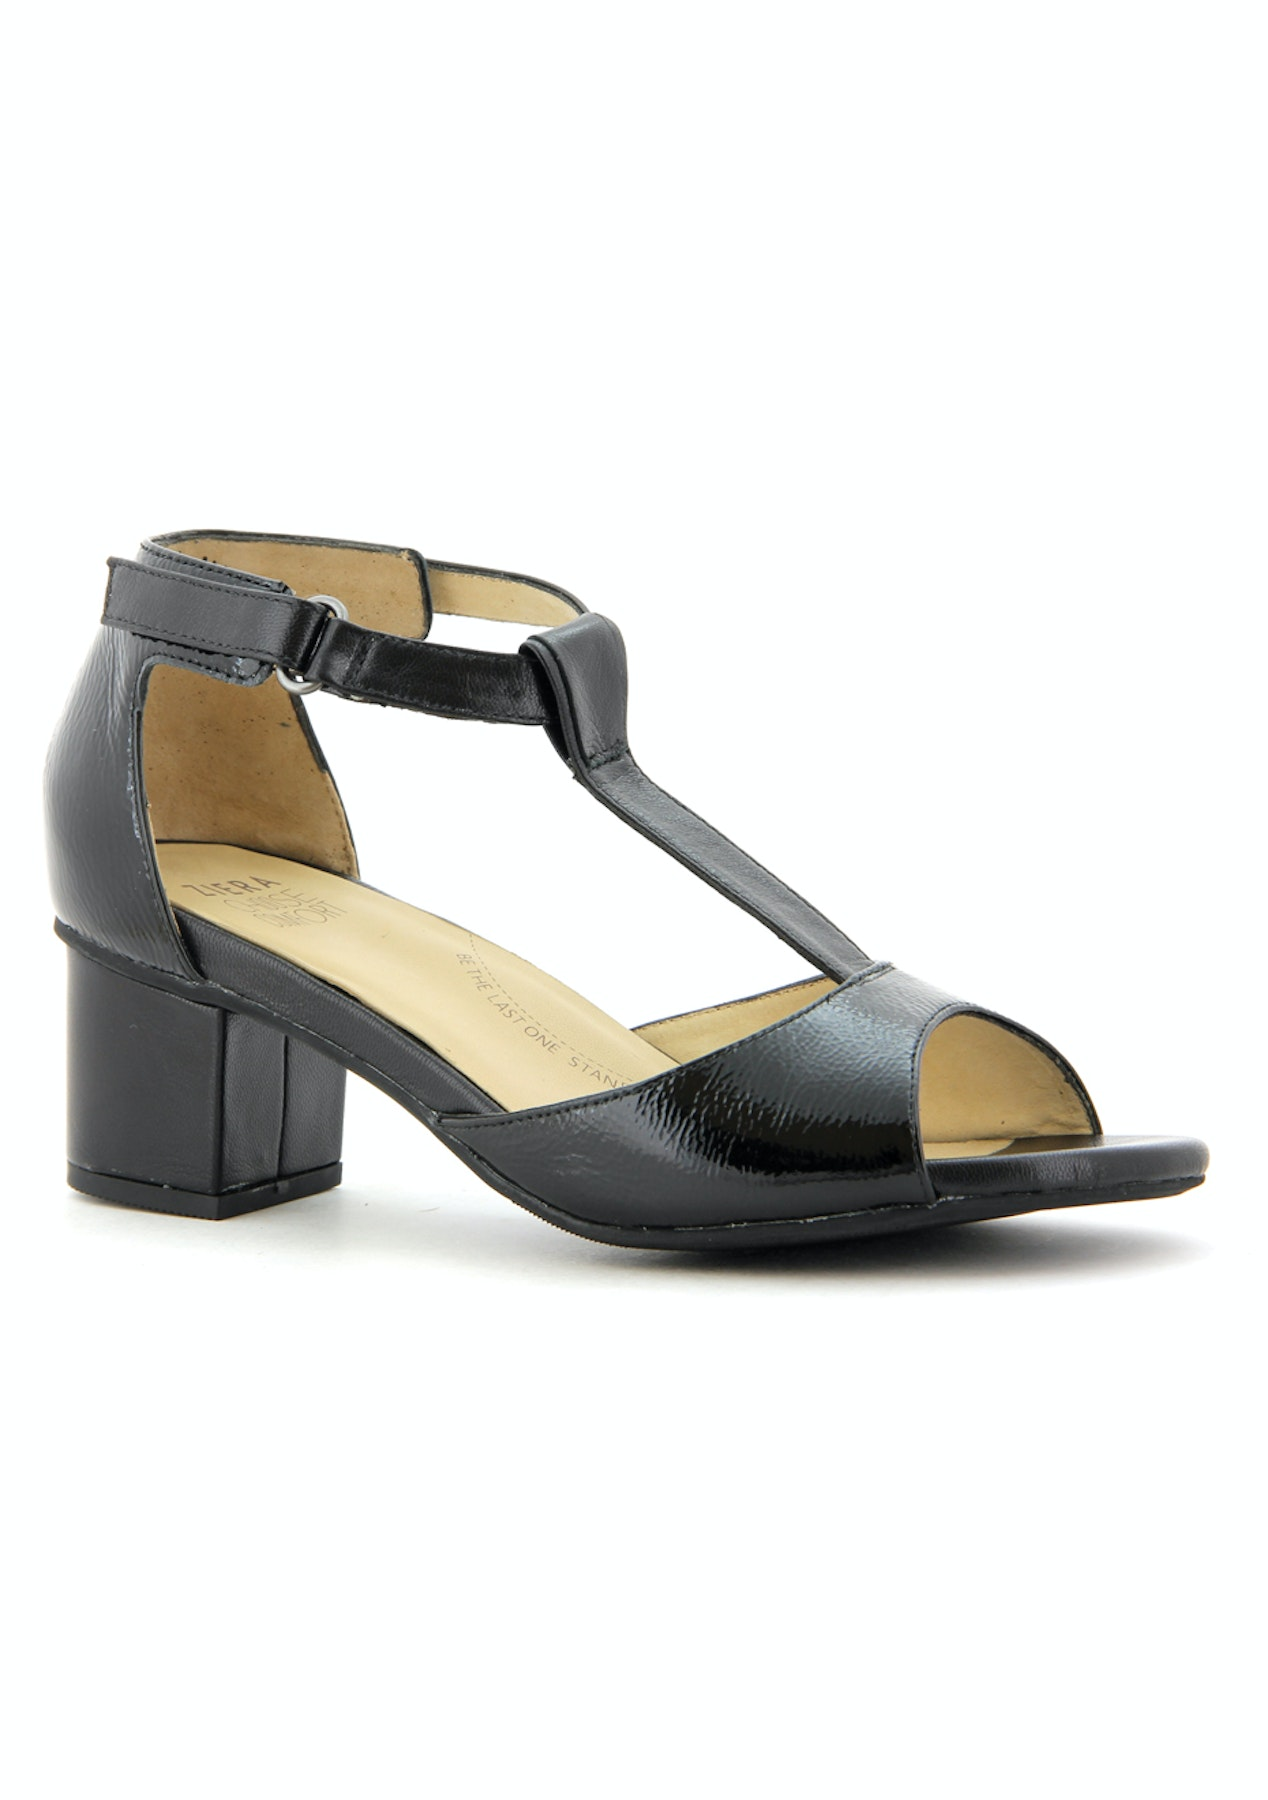 fe51943e9efa Ziera - Dylan - Black Patent Black - Extra Wide - Ziera Shoes - First Time  Ever! - Onceit